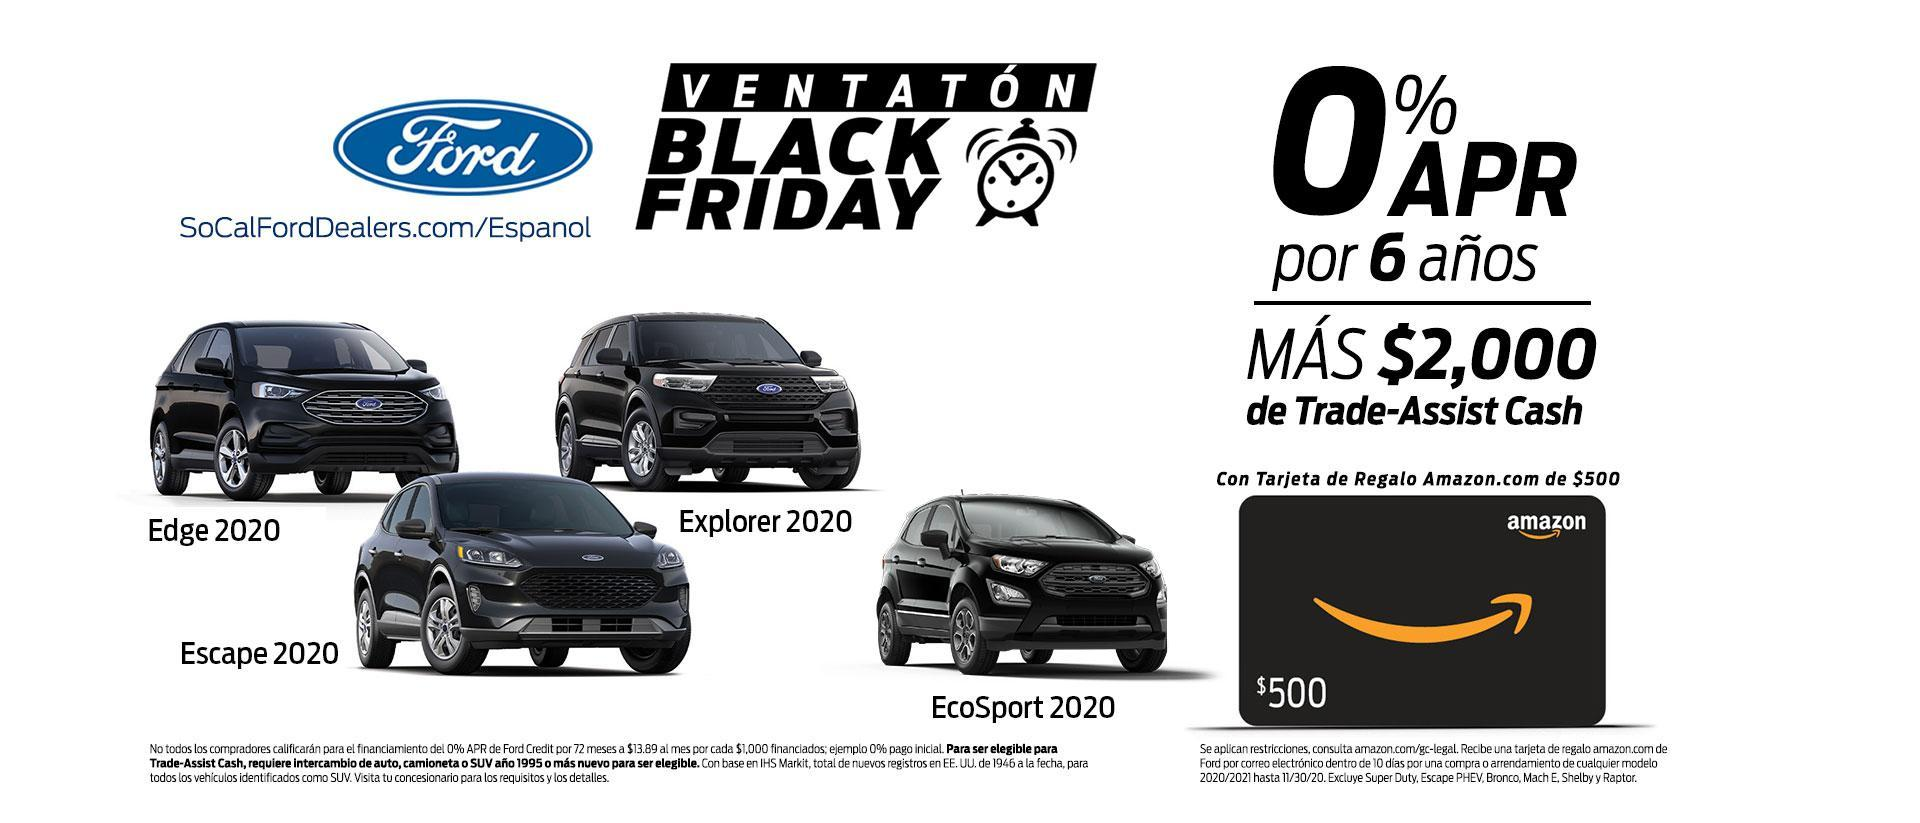 SUV Black Friday Offers